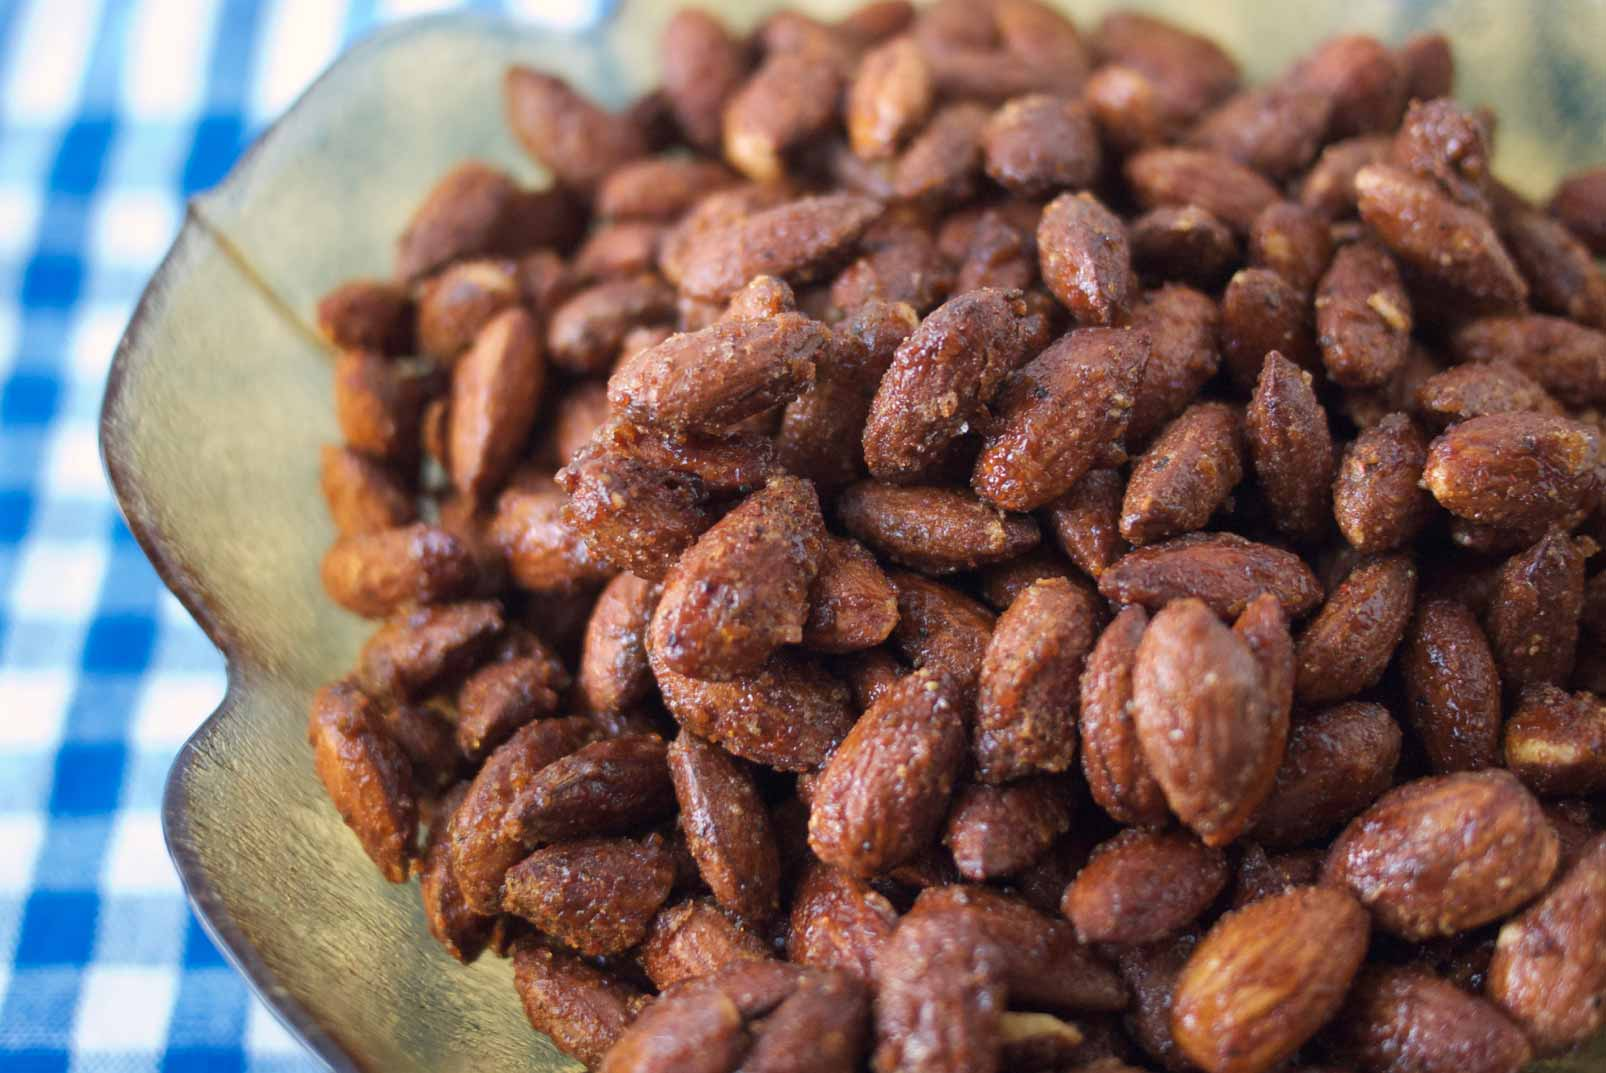 Smoky, Spiced Candied Almonds